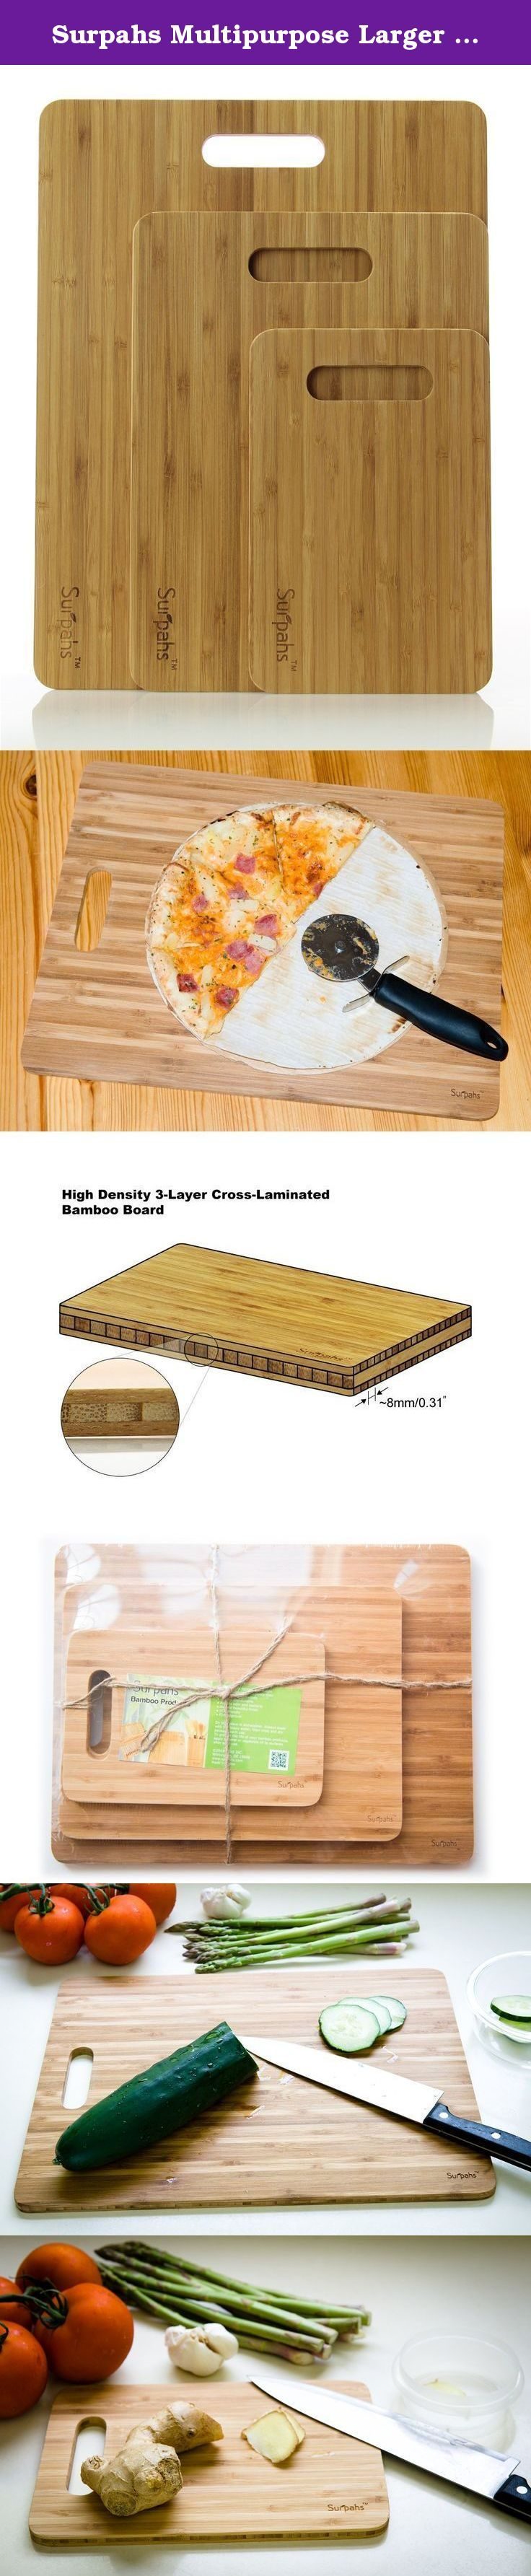 """Surpahs Multipurpose Larger Bamboo Cutting Board Set, 3-Ply Cross Laminated, 3 Pieces (15""""/12""""/9""""). Set of multipurpose 3 cutting boards in small, medium and large sizes, perfect kitchen accessories for cheese, bread, meat and vegetable cutting. It can also be used as pizza peel. Sizes Large: 15""""x 11.5"""" Medium: 12""""x 9"""" Small: 9""""x 6"""" NOTE: It's normal that some tiny bamboo """"hair"""" may appear on the surface after several washing and dry, because Surpahs bamboo cutting boards are made with…"""